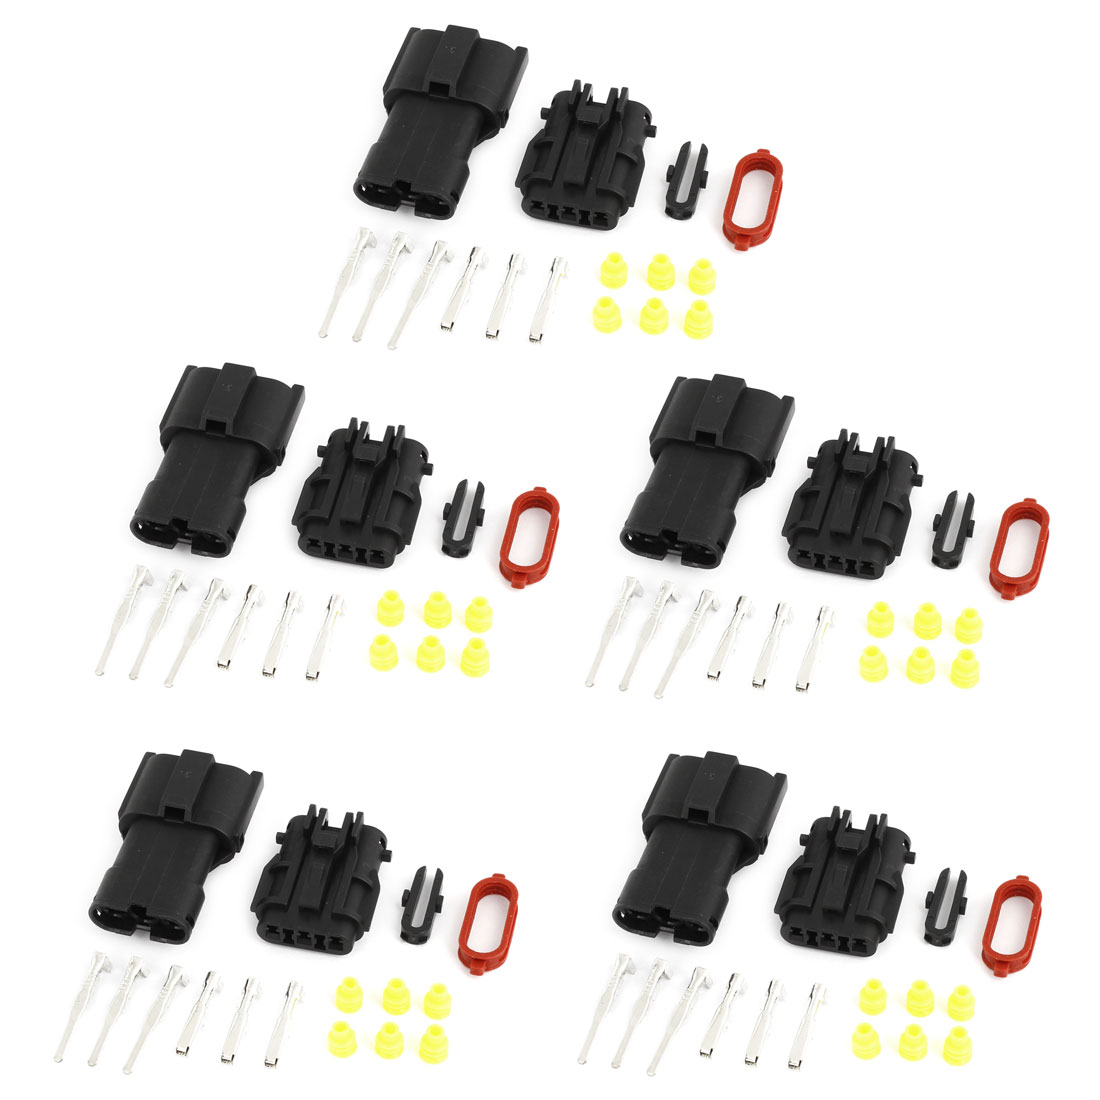 5 Set 3-Terminals 3 Positions Waterproof Wire Sealed Connectors for Car Stereo